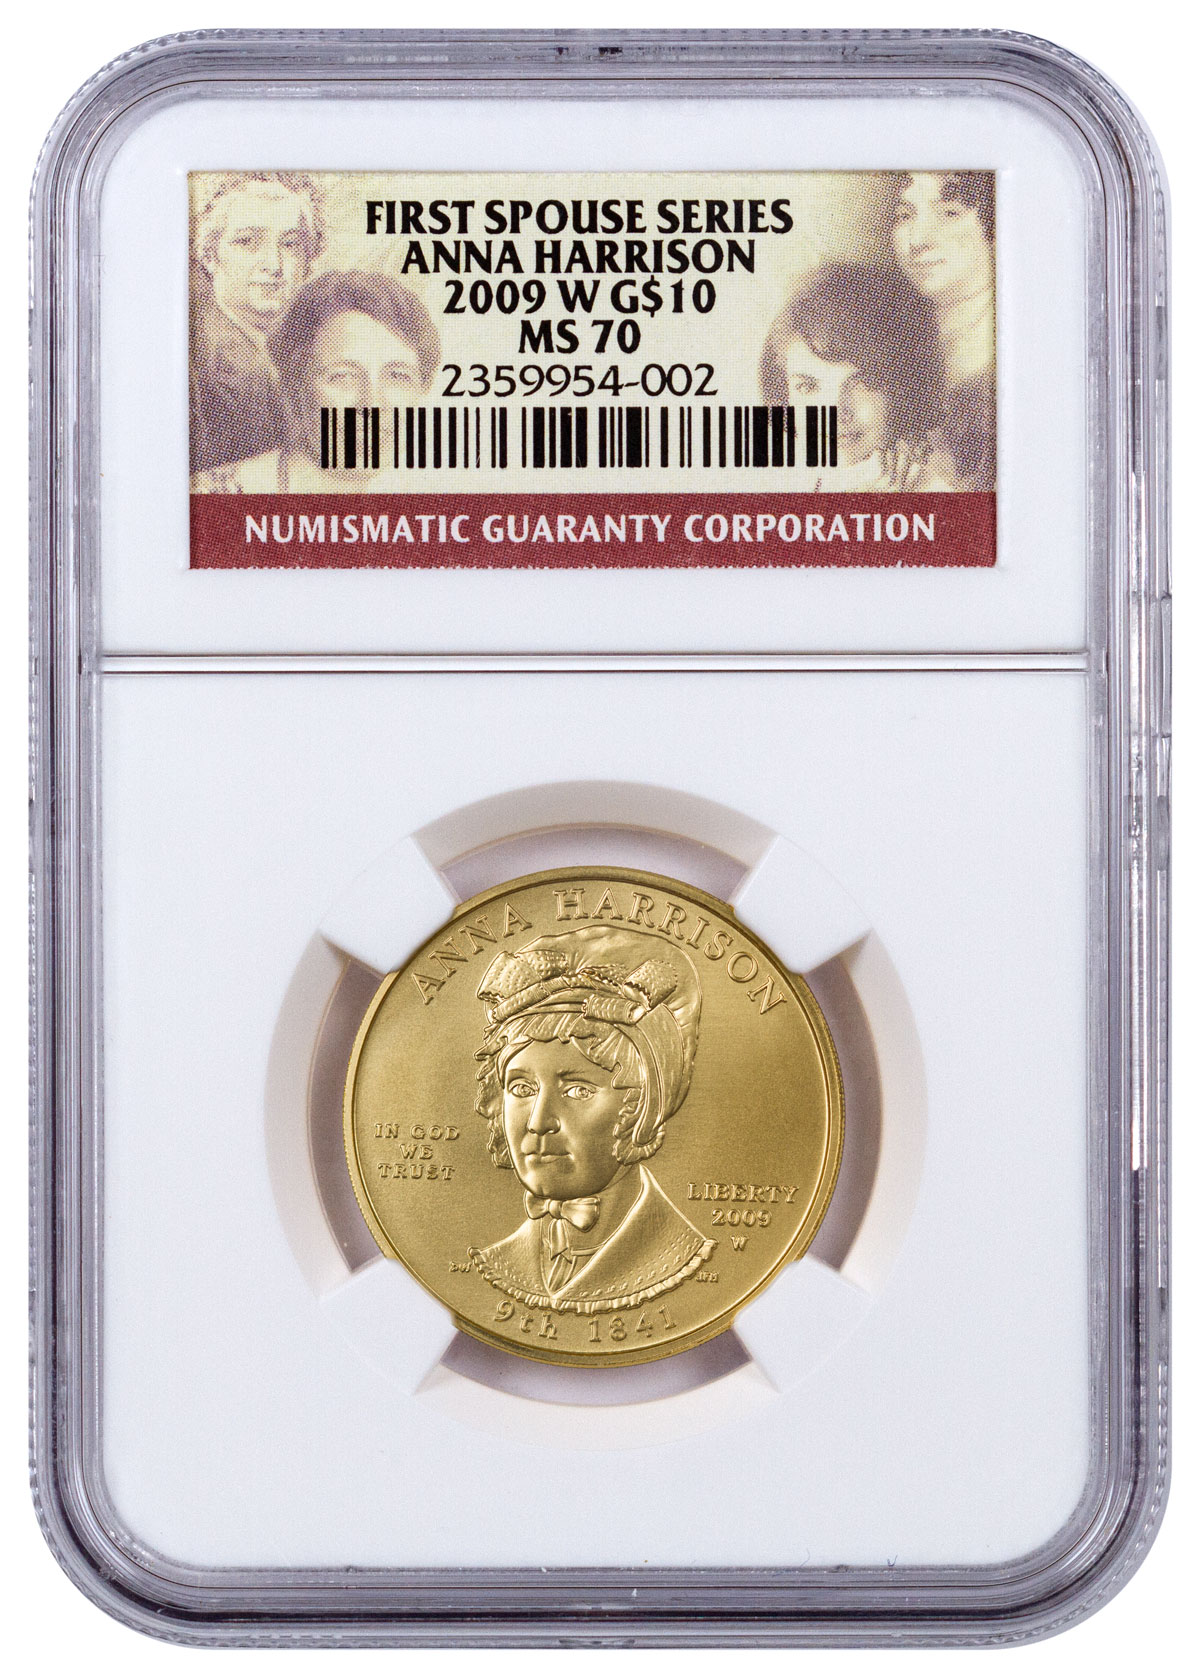 2009-W Anna Harrison First Spouse Gold $10 Coin NGC MS70